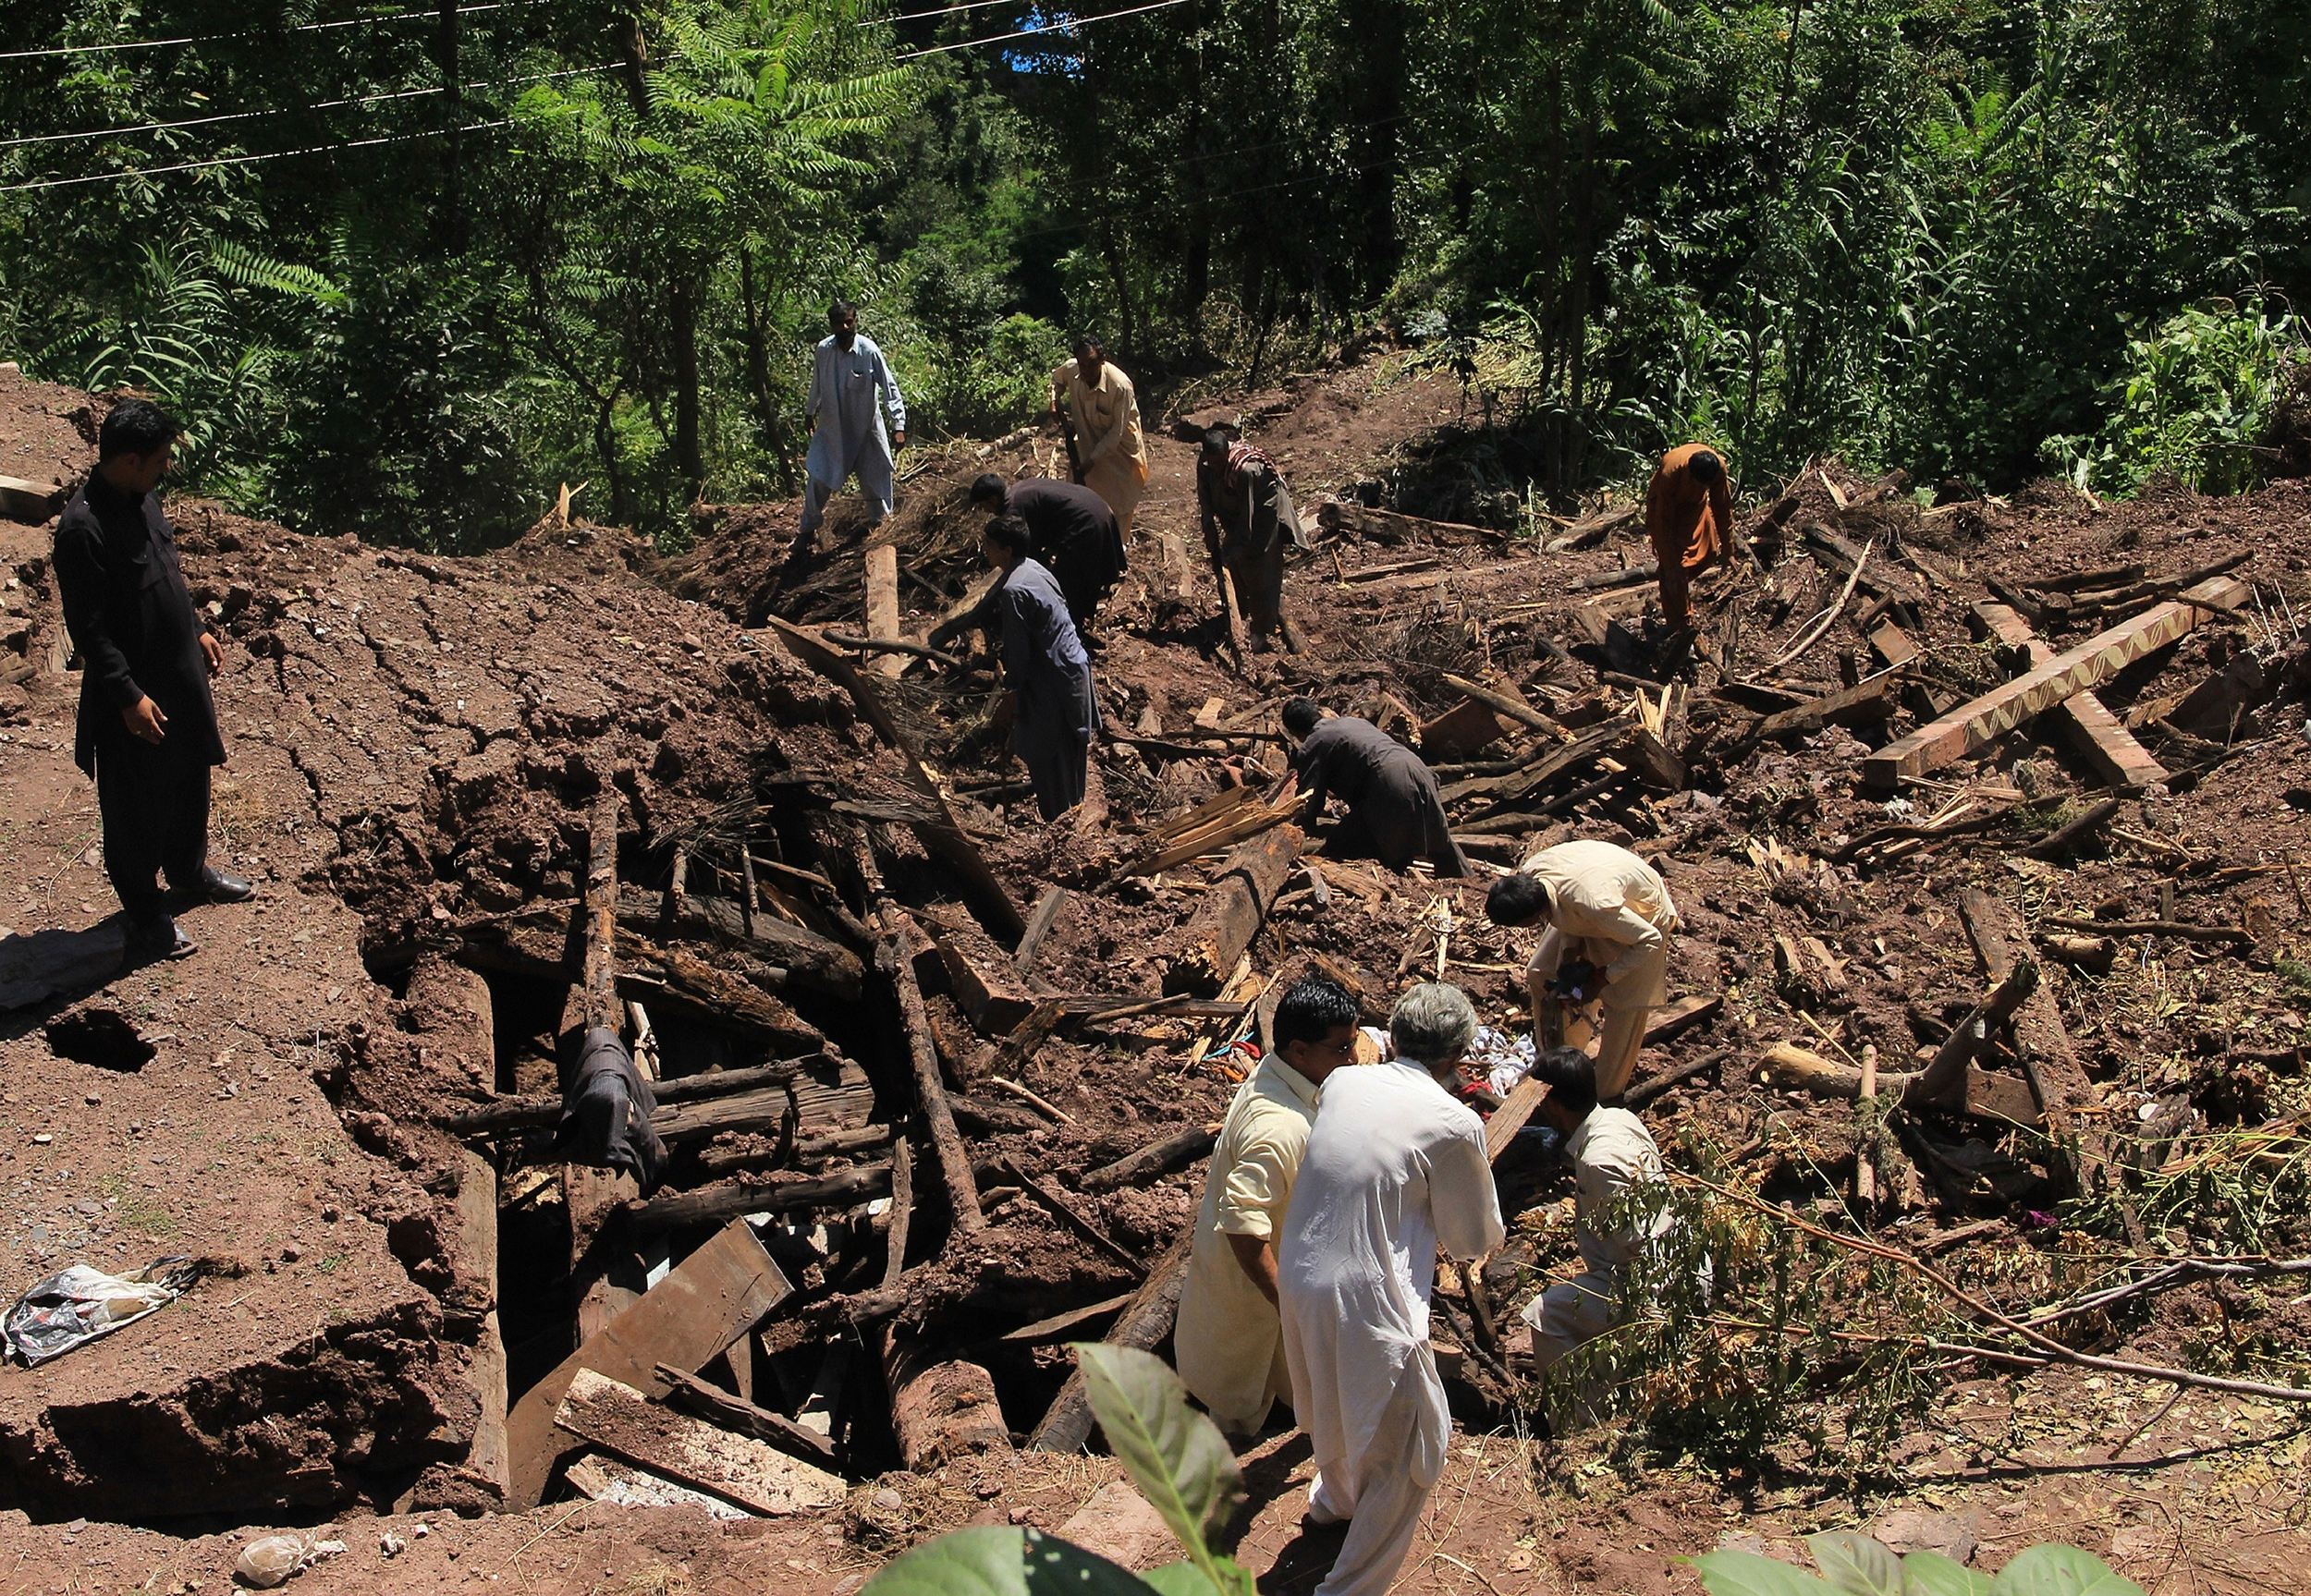 Aol com article death toll in india pakistan floods reaches 400